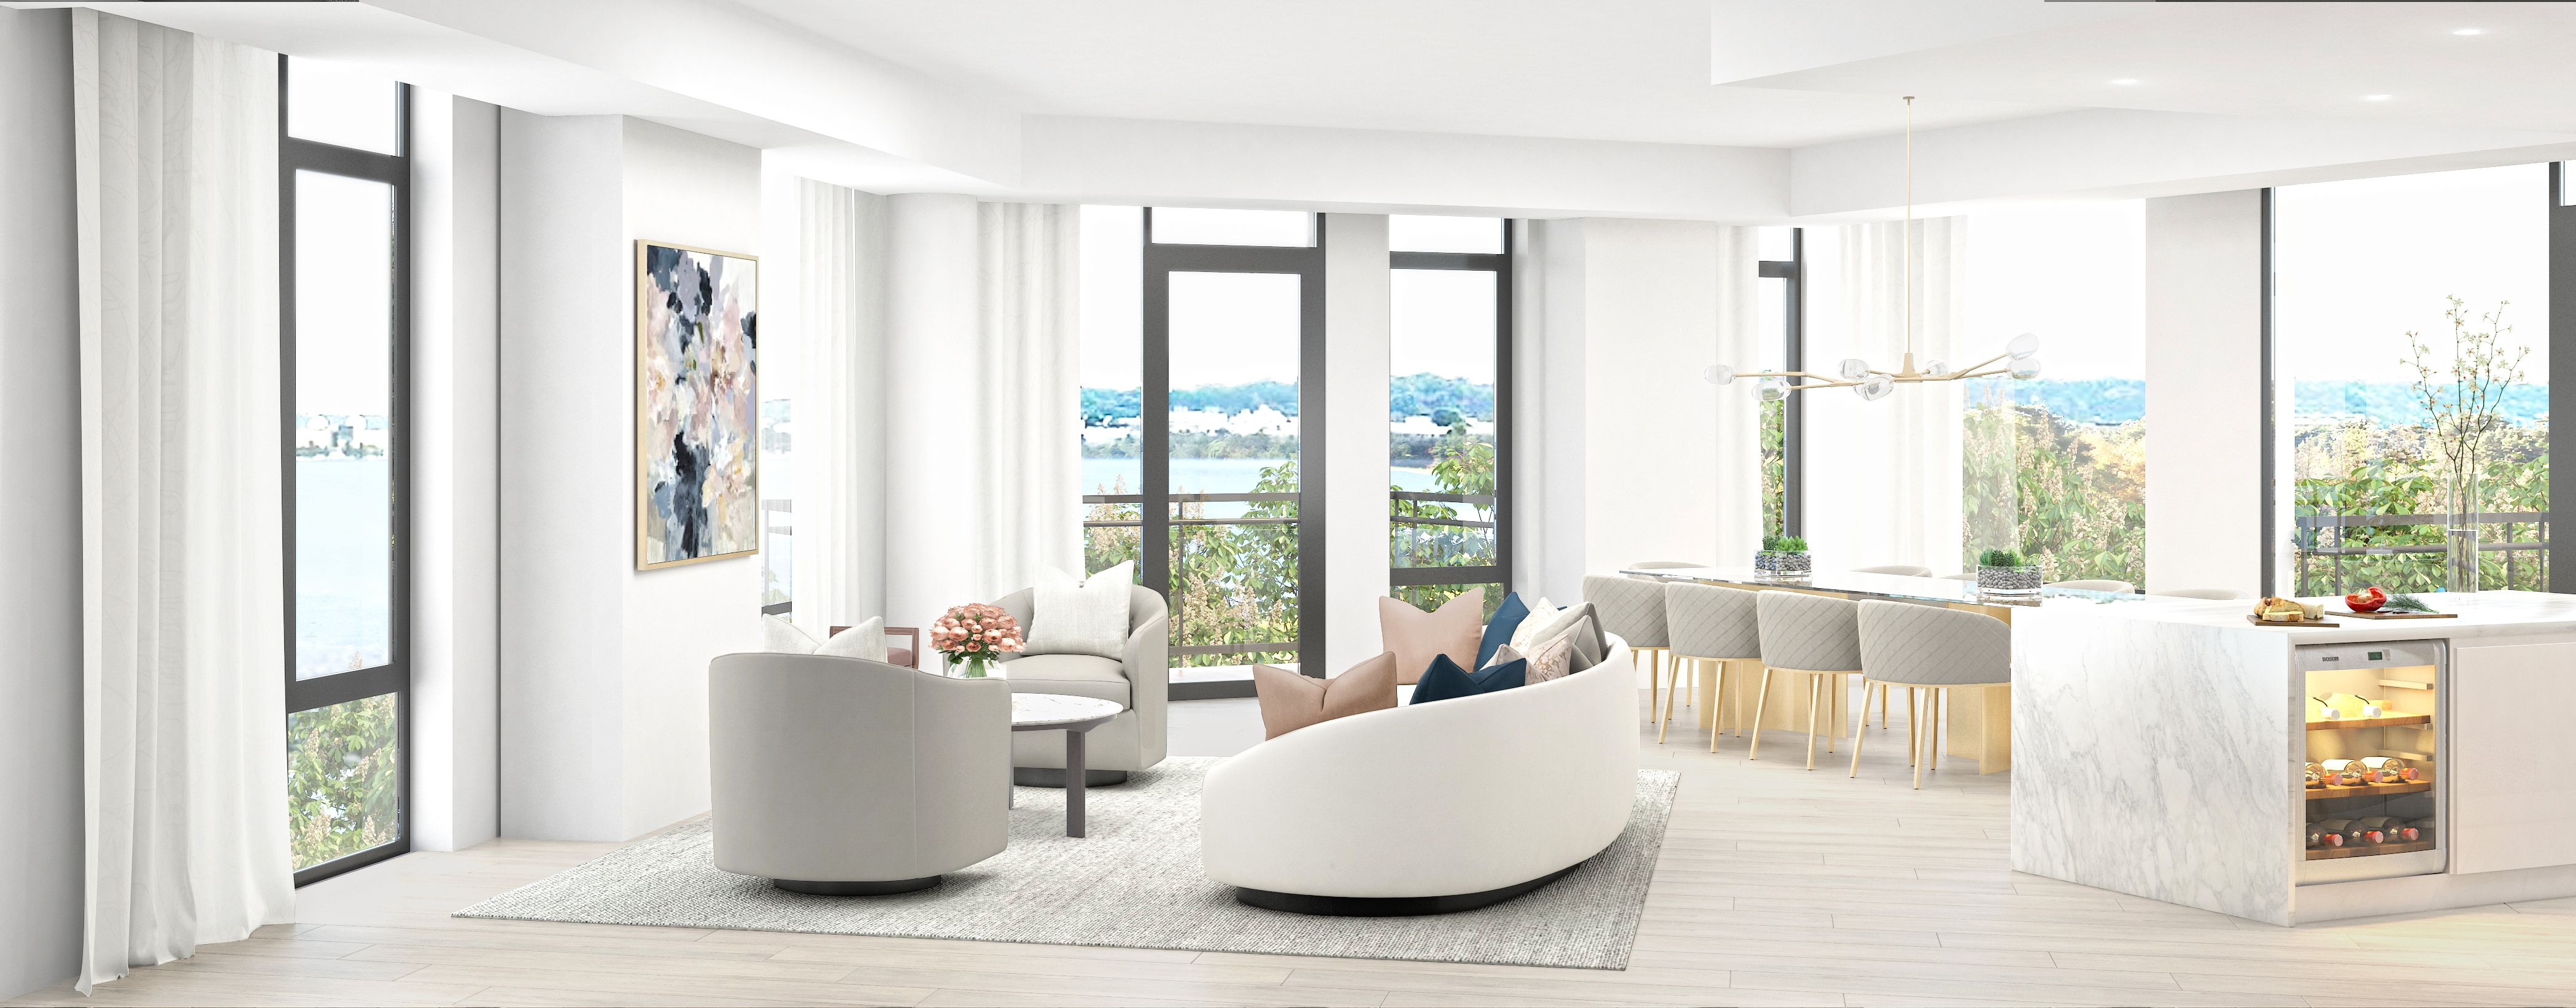 Living Area featured in the Residence D1 By MUSE in Washington, VA